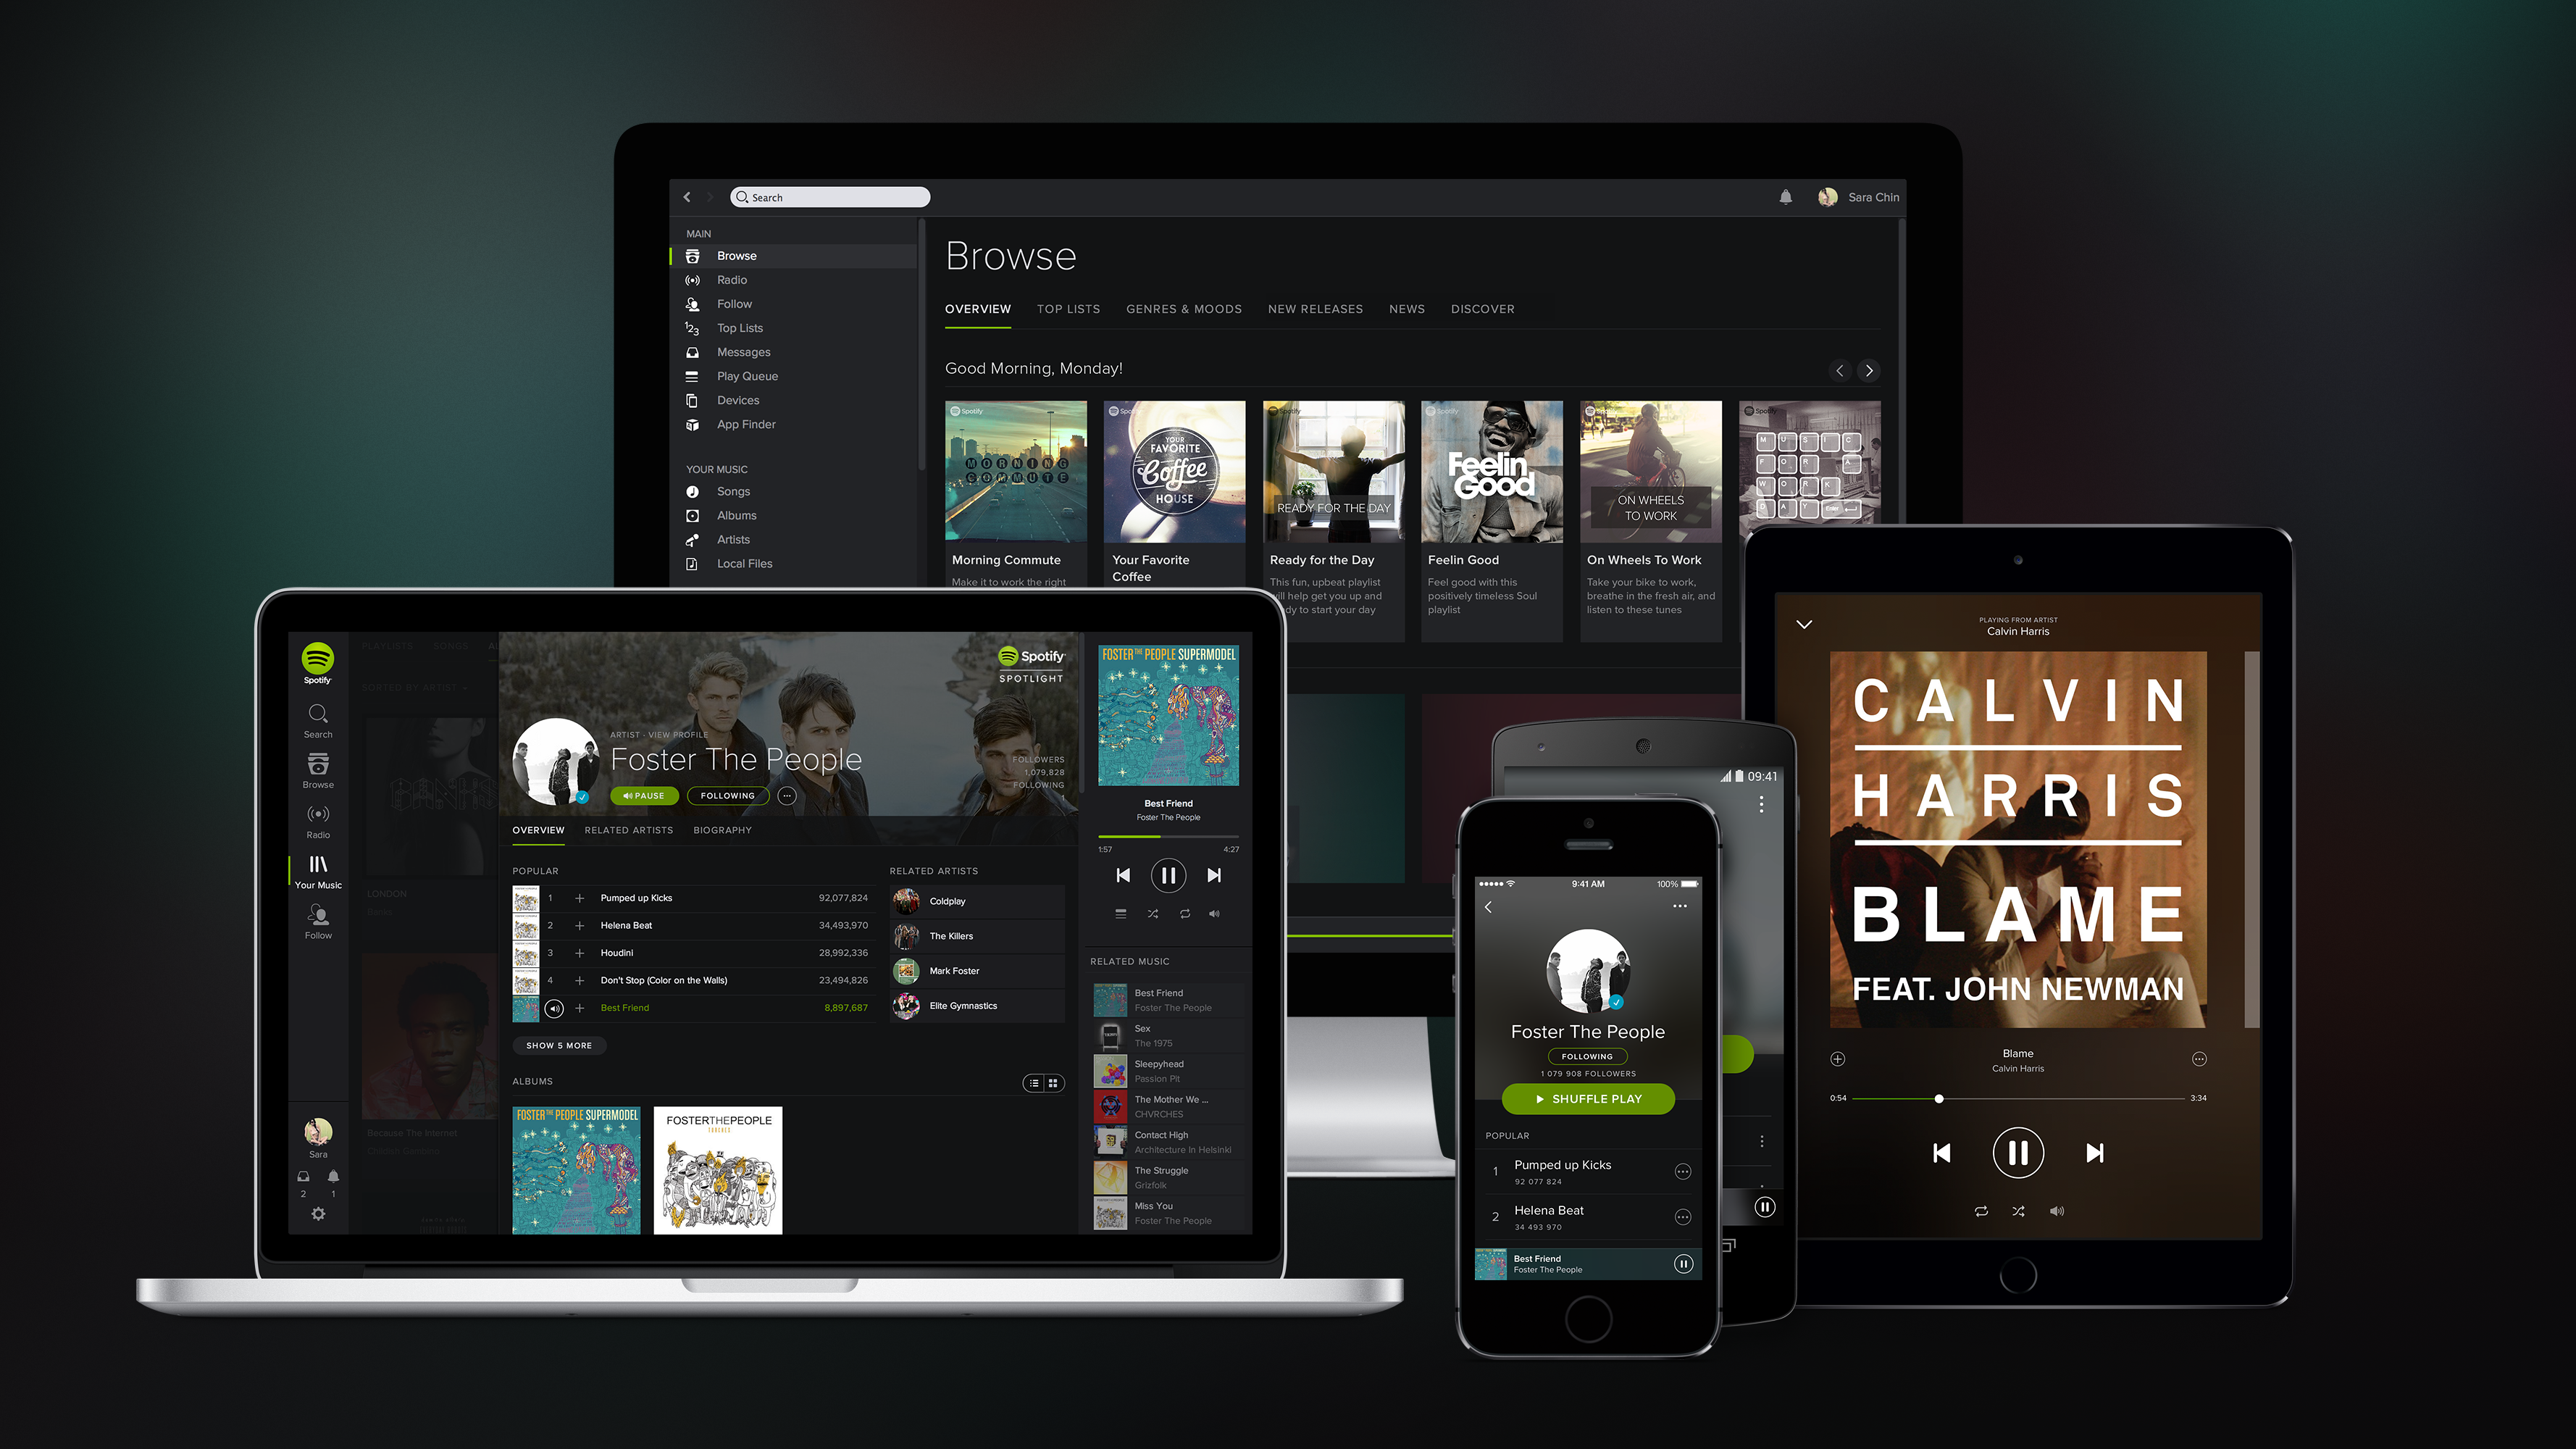 Spotify trumps Pandora as the world's favorite music service, but Apple is nowhere to be seen